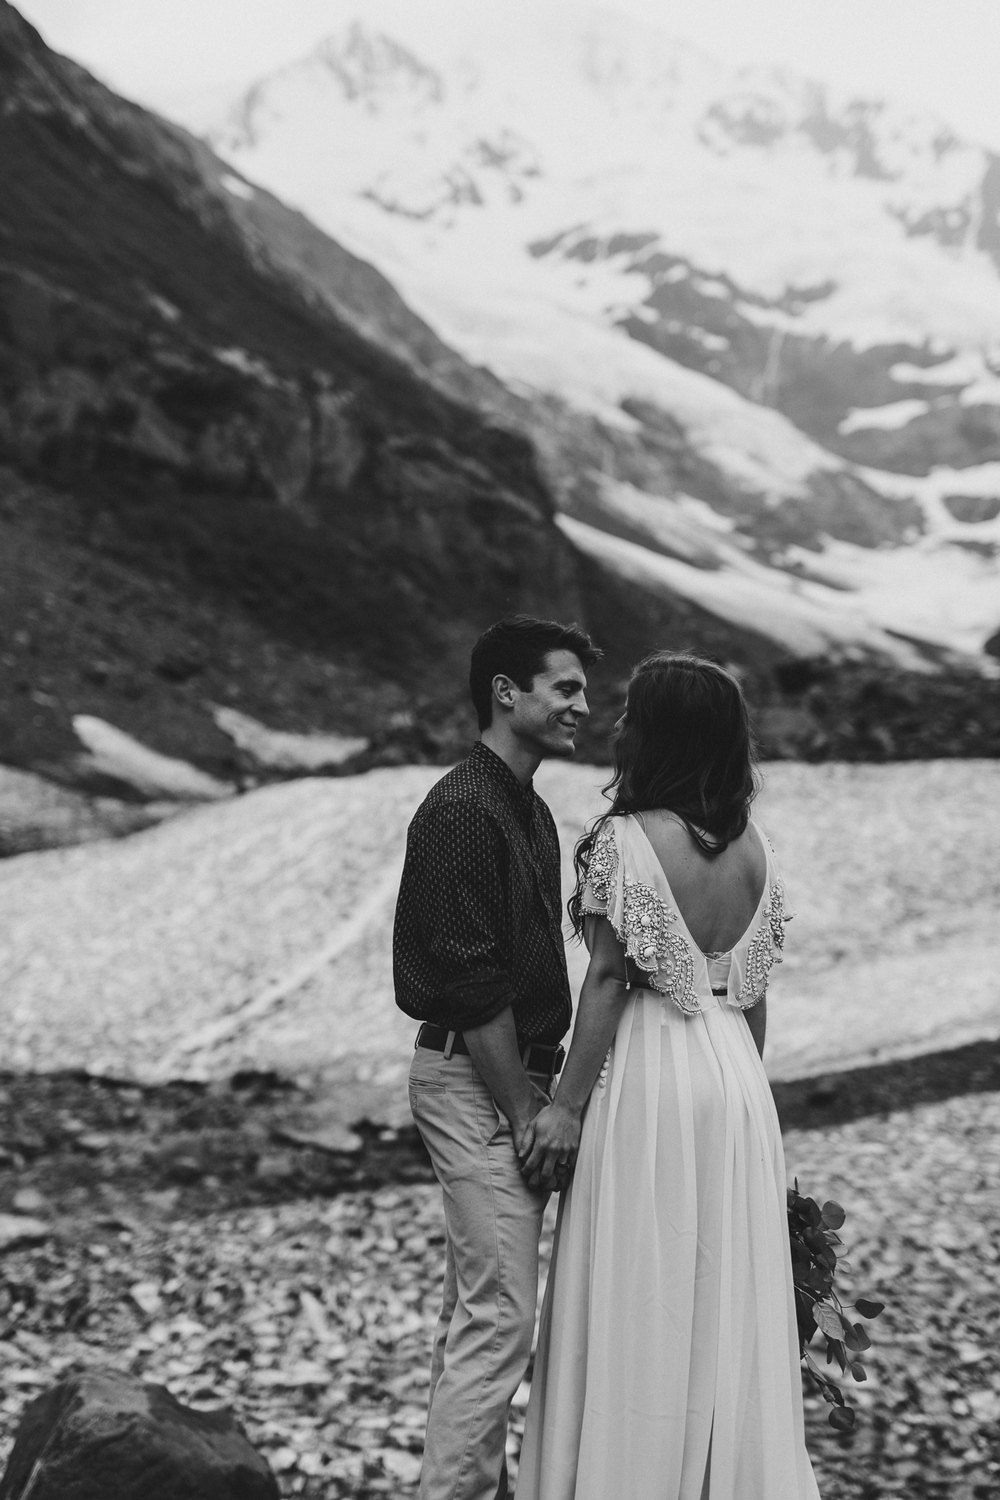 jess-hunter-photographer-alaska-destination-elopement-6413.jpg